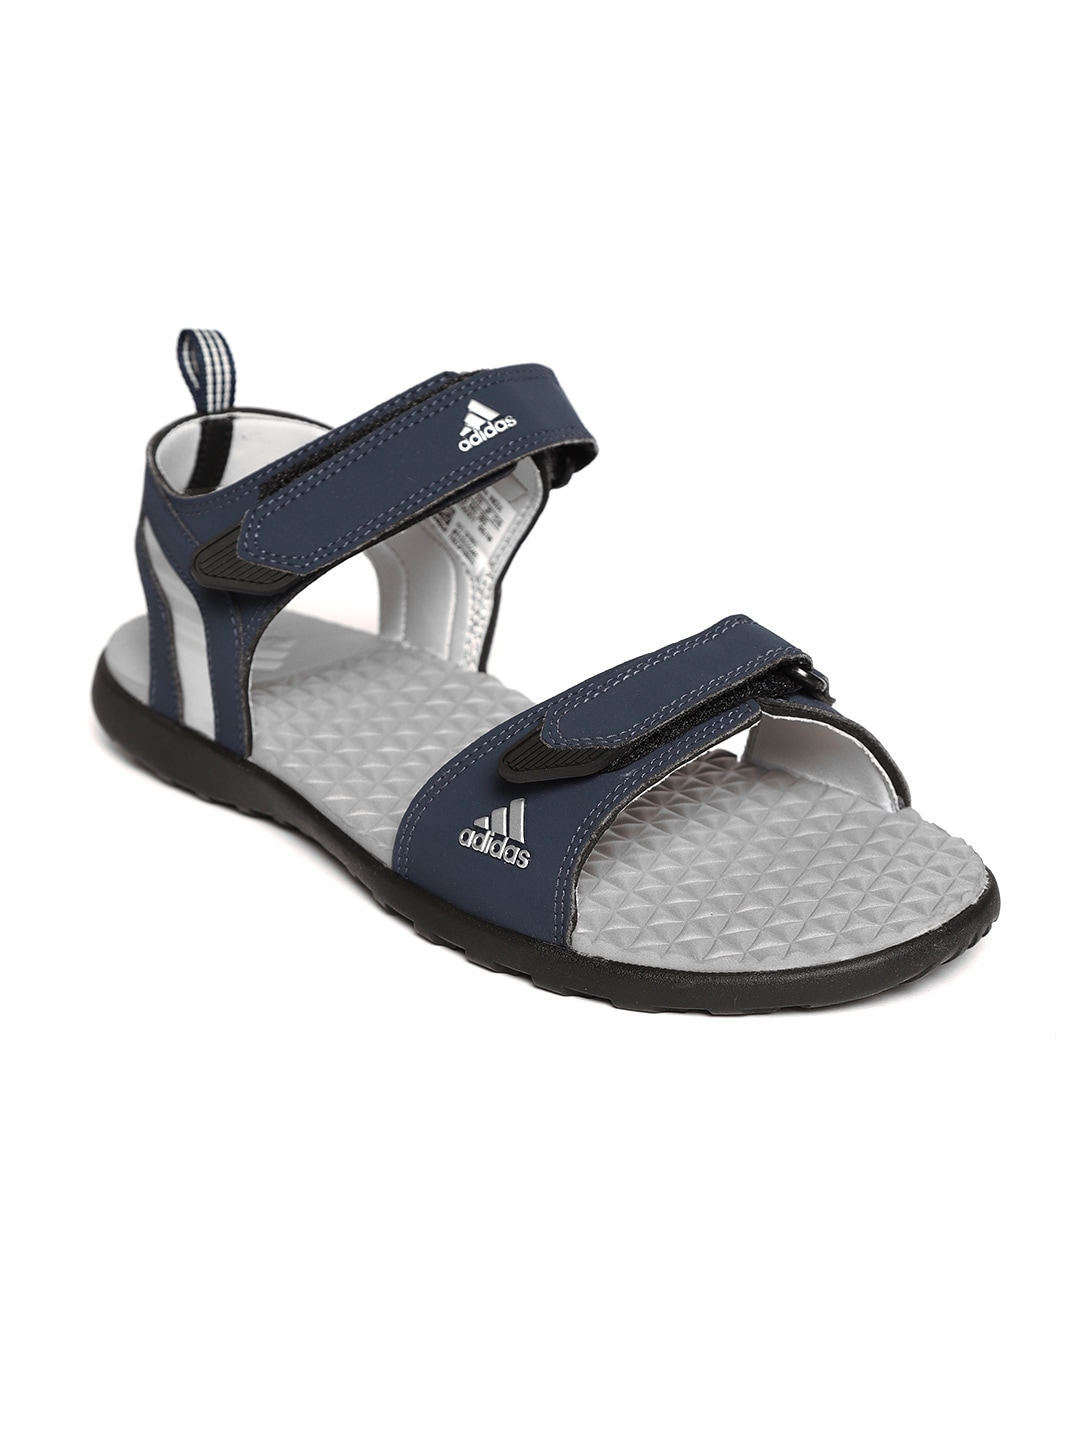 736252861f16 Adidas Floaters - Buy Adidas Sports Sandals Online in India